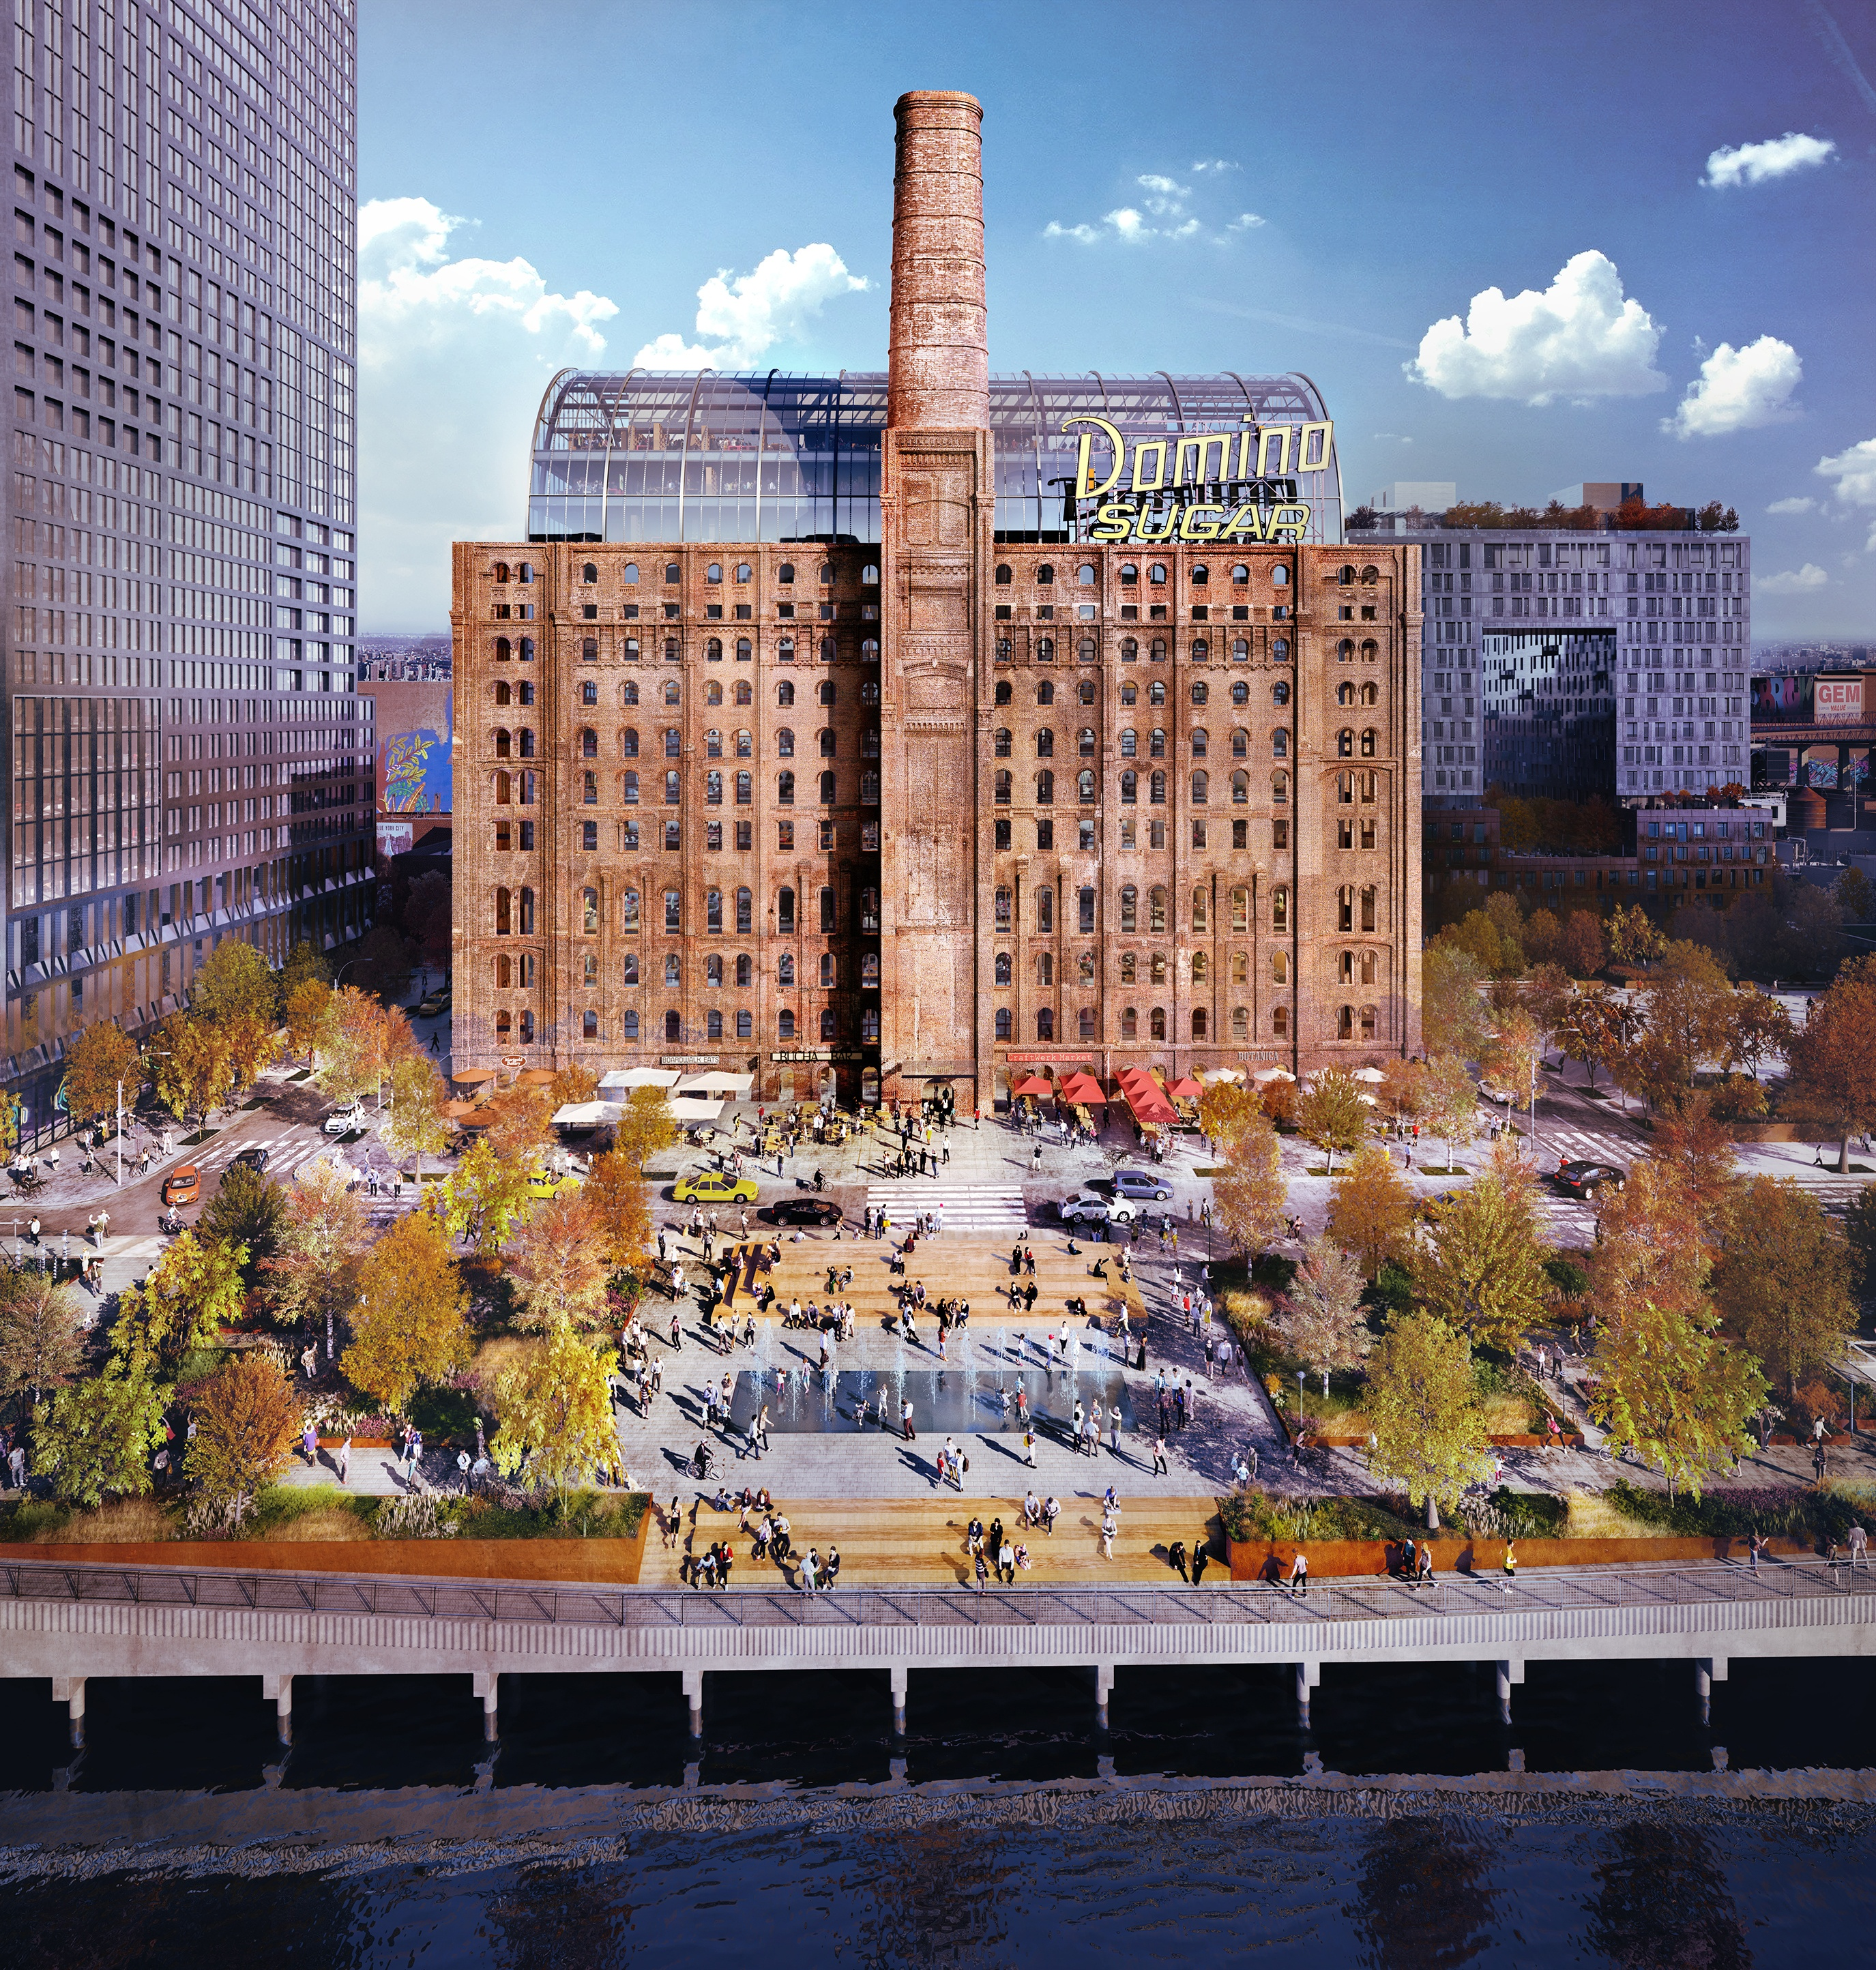 James Corner Field Operations' renderings for the Domino Sugar Factory's waterfront park and esplanade